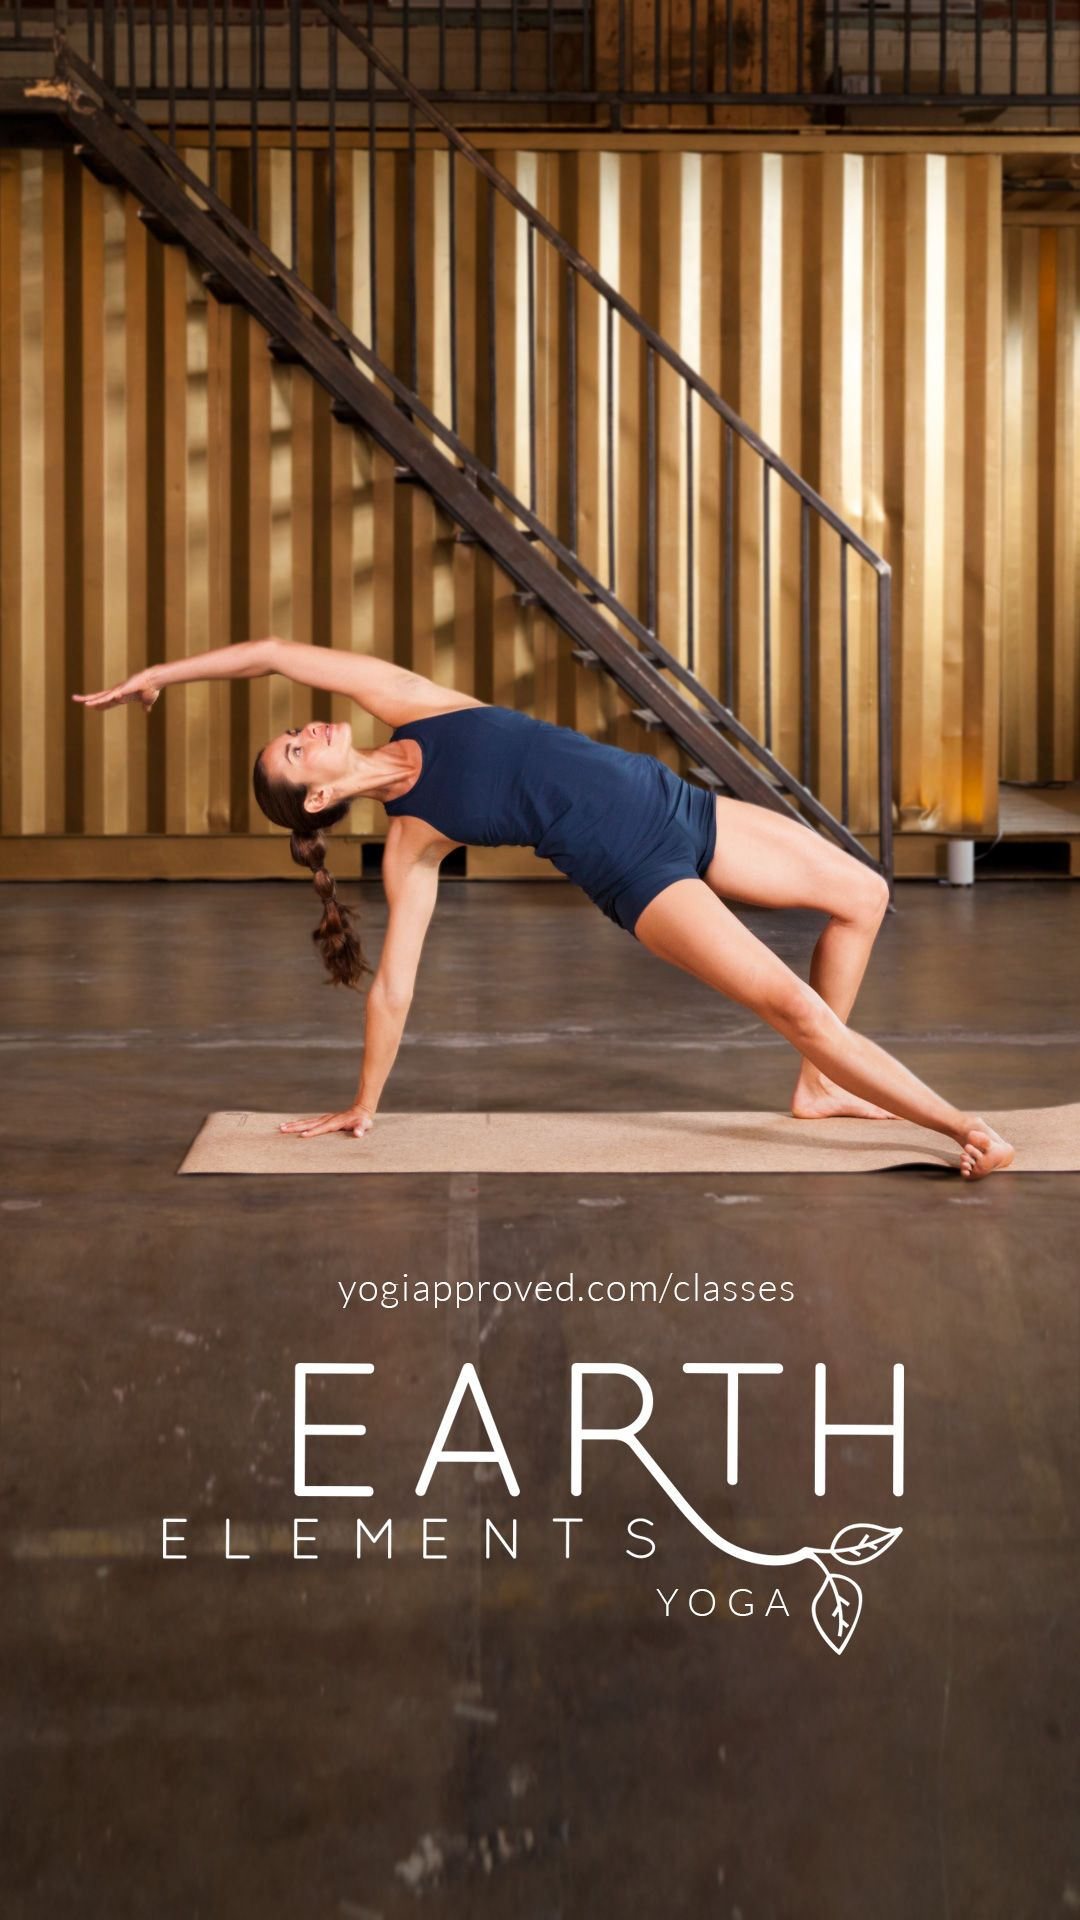 Learn How The Five Natural Elements Influence Your Life And And Your Yoga Practice Cultivate Natural Balance Within Yourself Through R Rous Movement